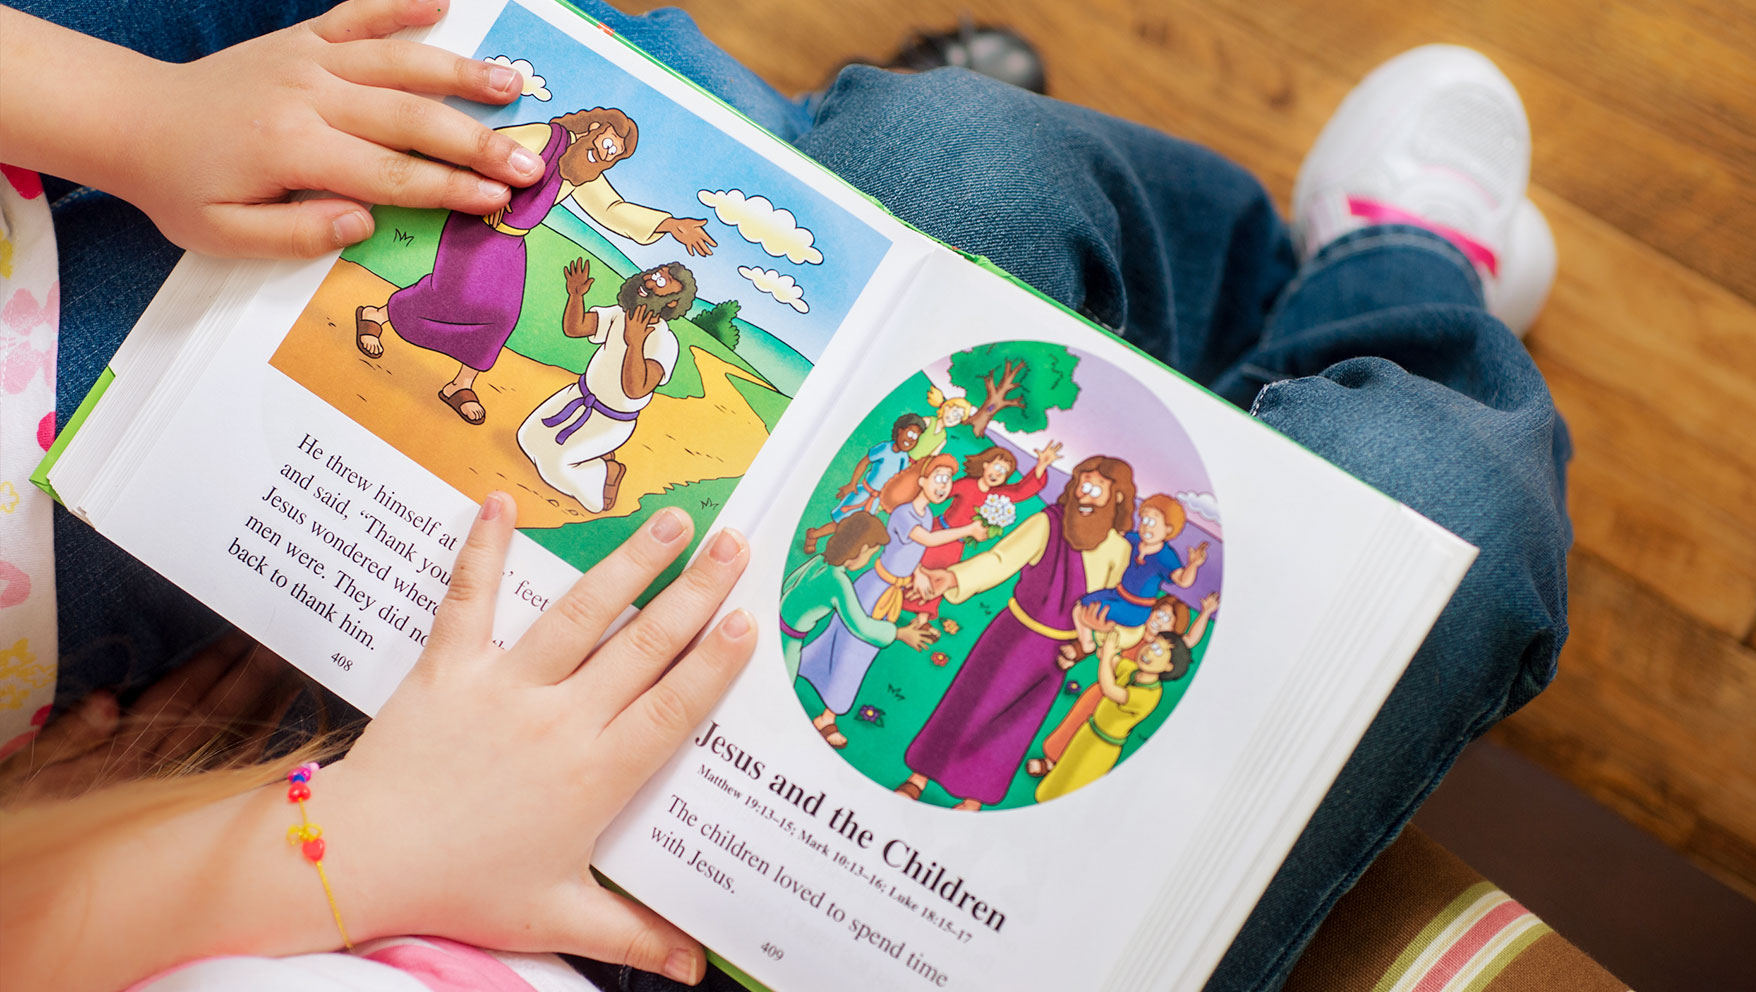 4 Bible Stories to Teach Your Kids About Gentleness & Self-Control